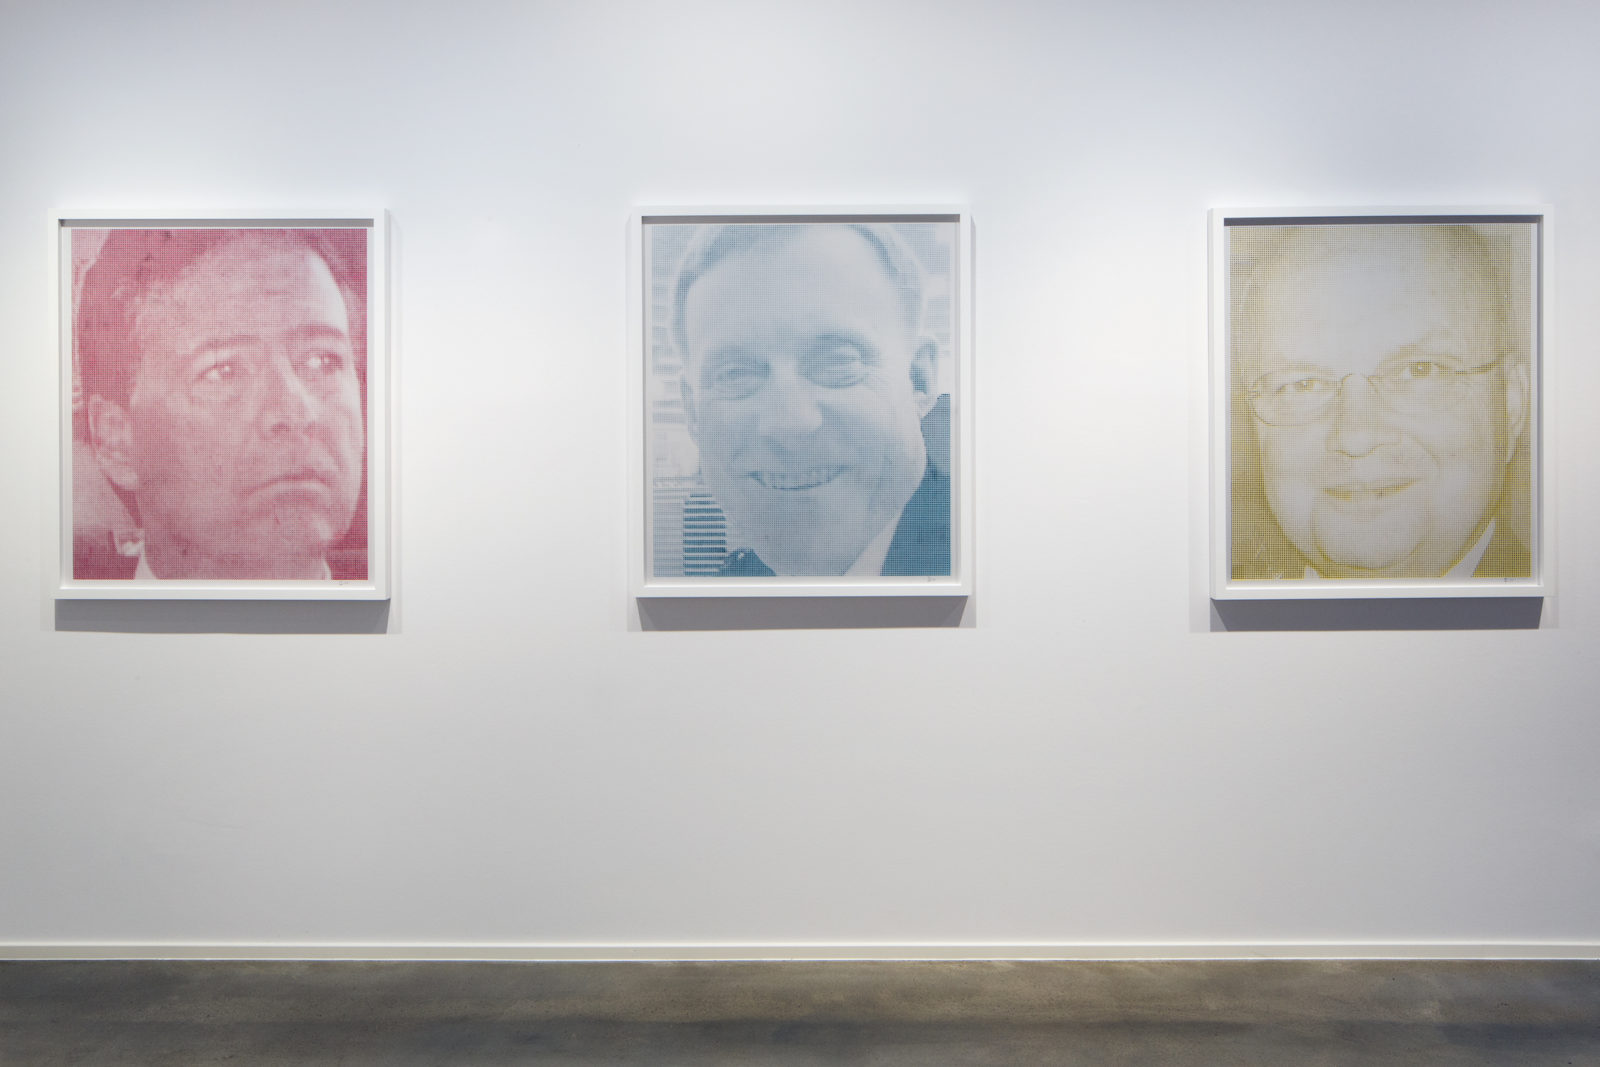 """Overexposed"" (2015) – Appropriated social media photos of U.S. intelligence officials posted to public walls"